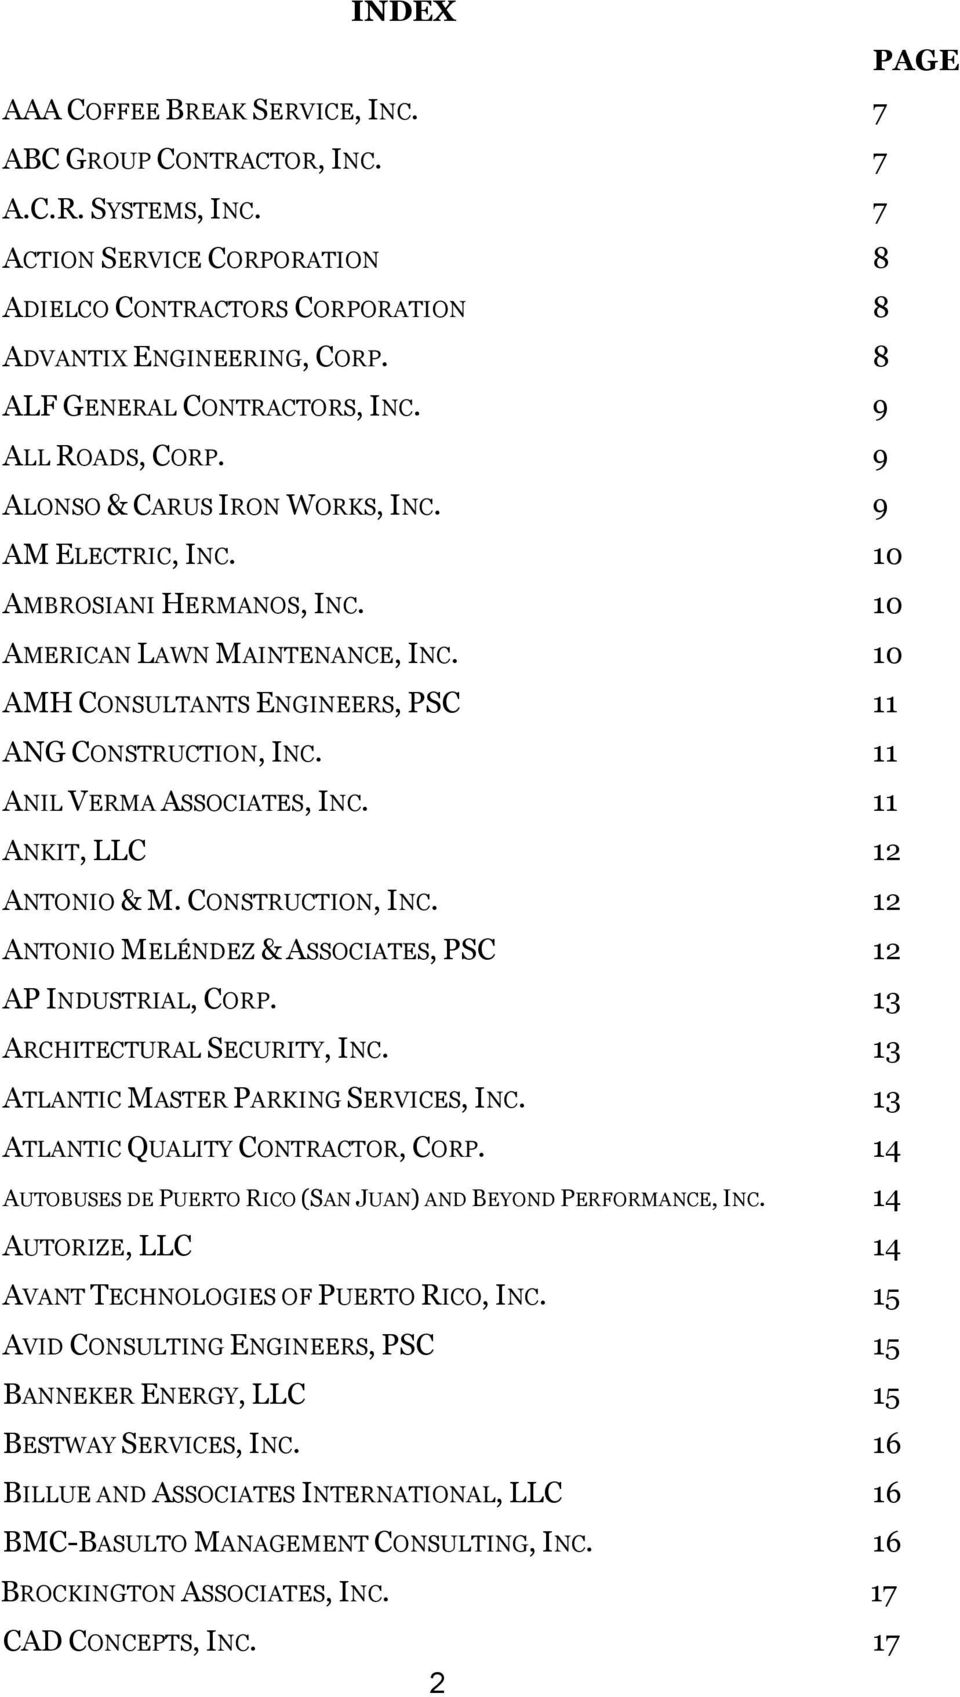 10 AMH CONSULTANTS ENGINEERS, PSC 11 ANG CONSTRUCTION, INC. 11 ANIL VERMA ASSOCIATES, INC. 11 ANKIT, LLC 12 ANTONIO & M. CONSTRUCTION, INC. 12 ANTONIO MELÉNDEZ & ASSOCIATES, PSC 12 AP INDUSTRIAL, CORP.